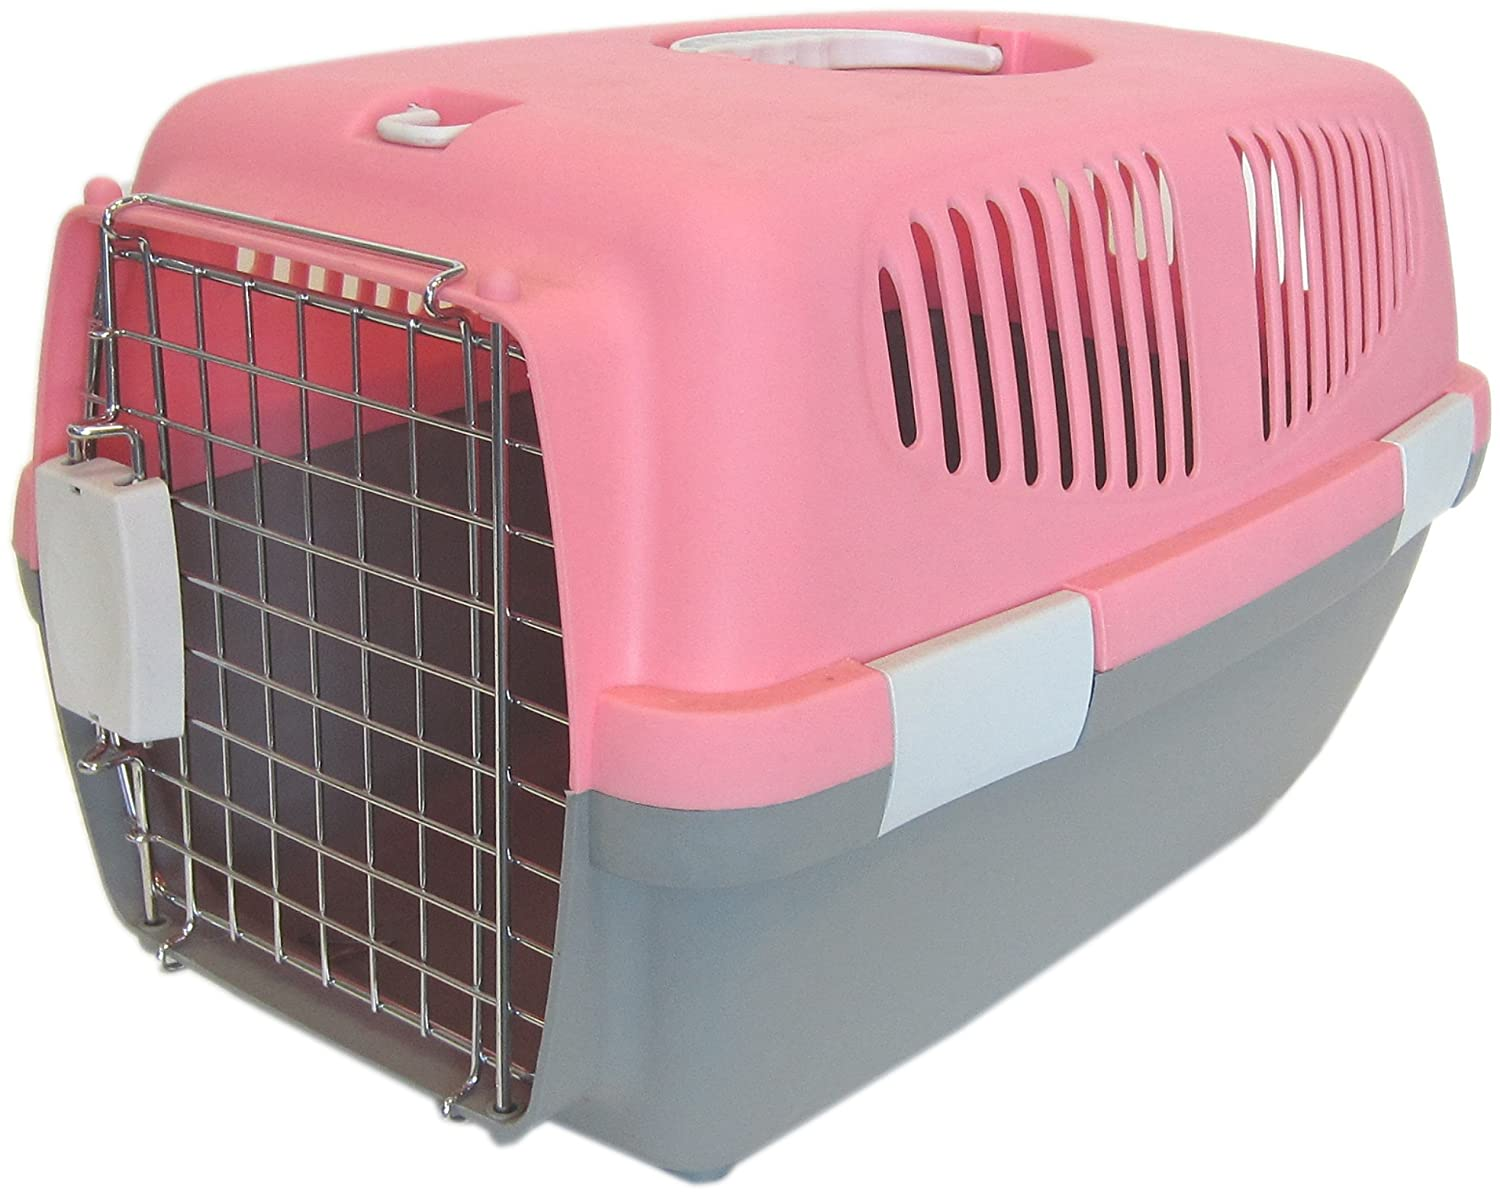 amazoncom  yml large plastic carrier for small animal pink  - amazoncom  yml large plastic carrier for small animal pink  petcarriers  pet supplies